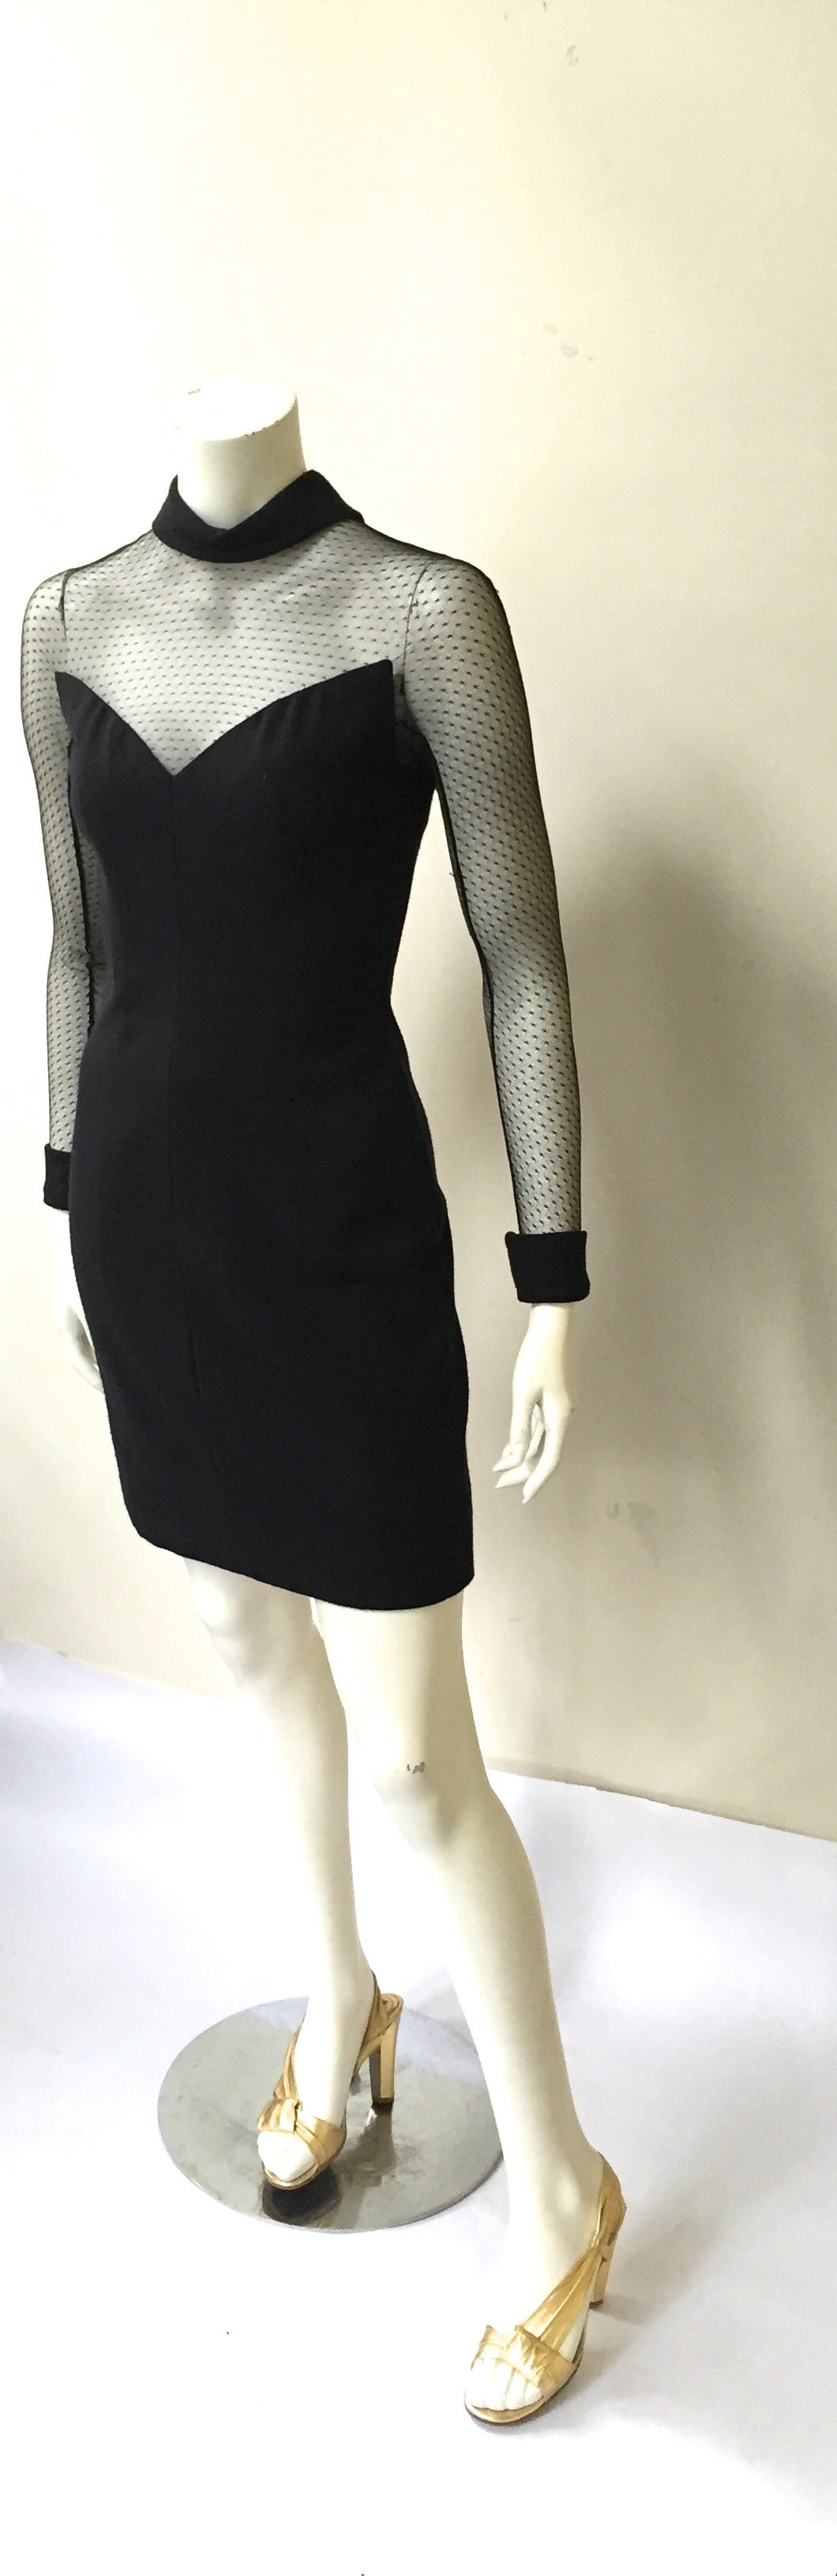 Women's Scaasi Boutique 80s black cocktail dress size 4. For Sale